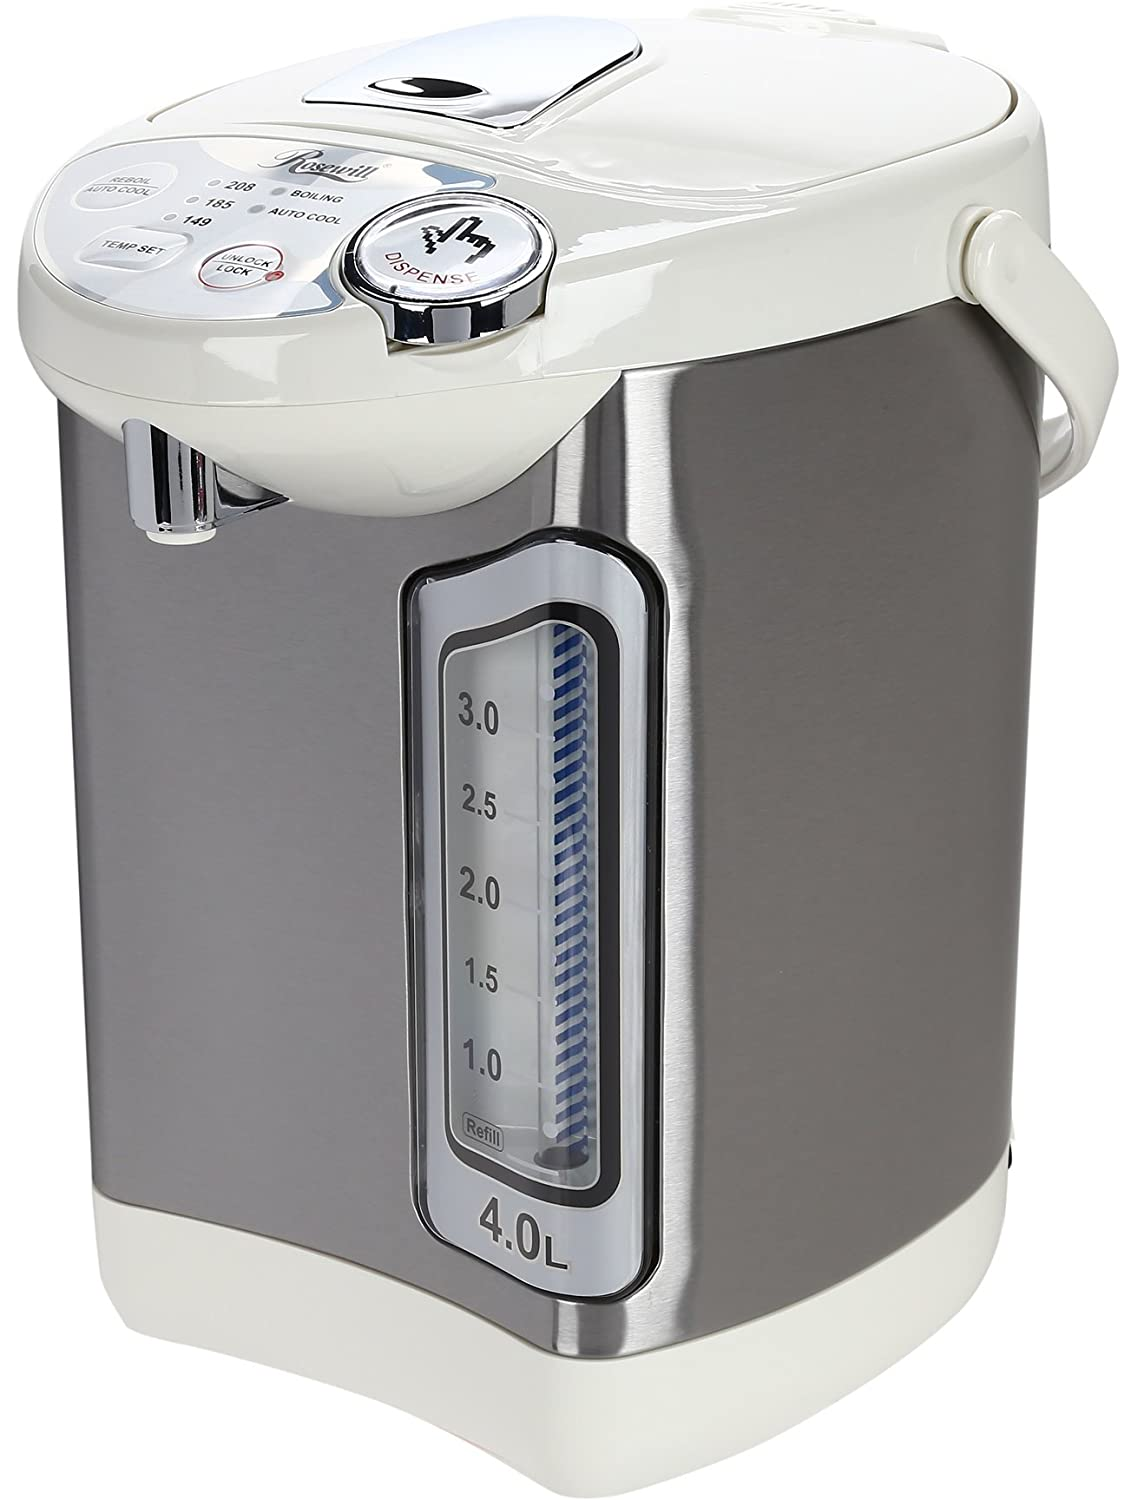 Amazon.com: Rosewill Electric Hot Water Boiler and Warmer, 4.0 Liter ...